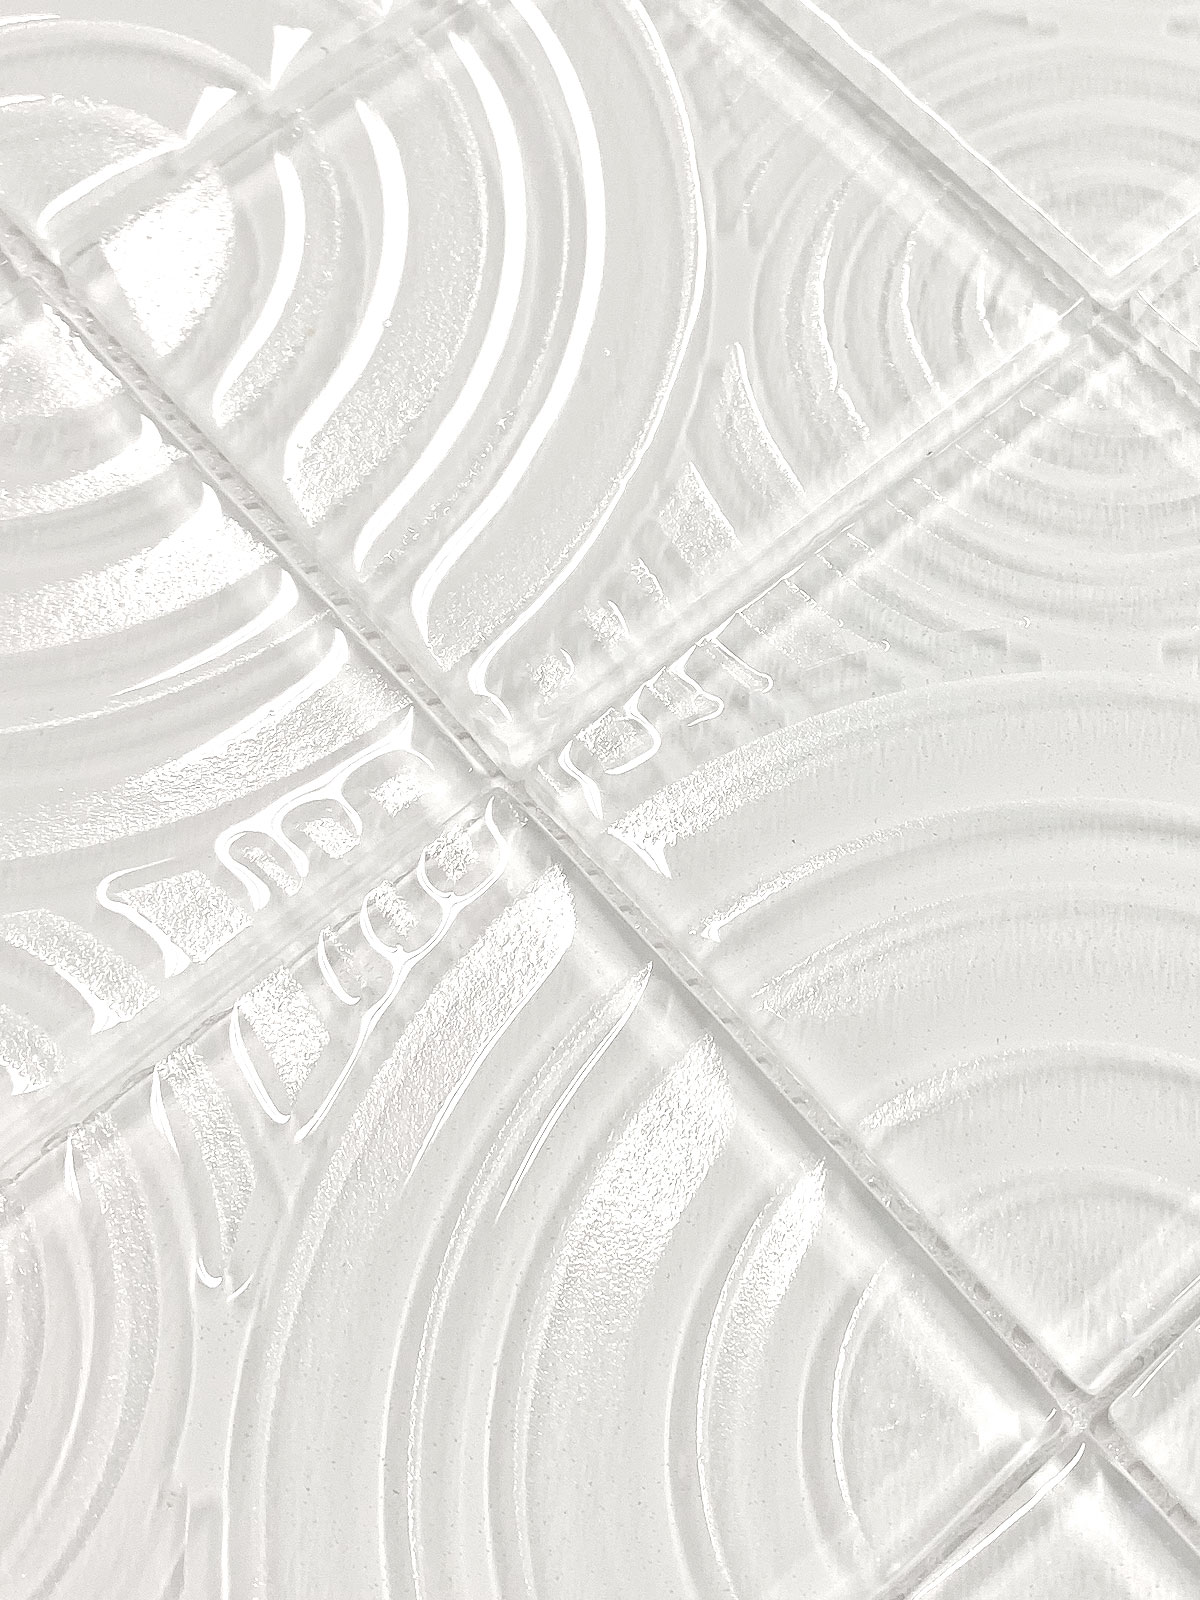 White glass mosaic backsplash pattern design BA64001 2